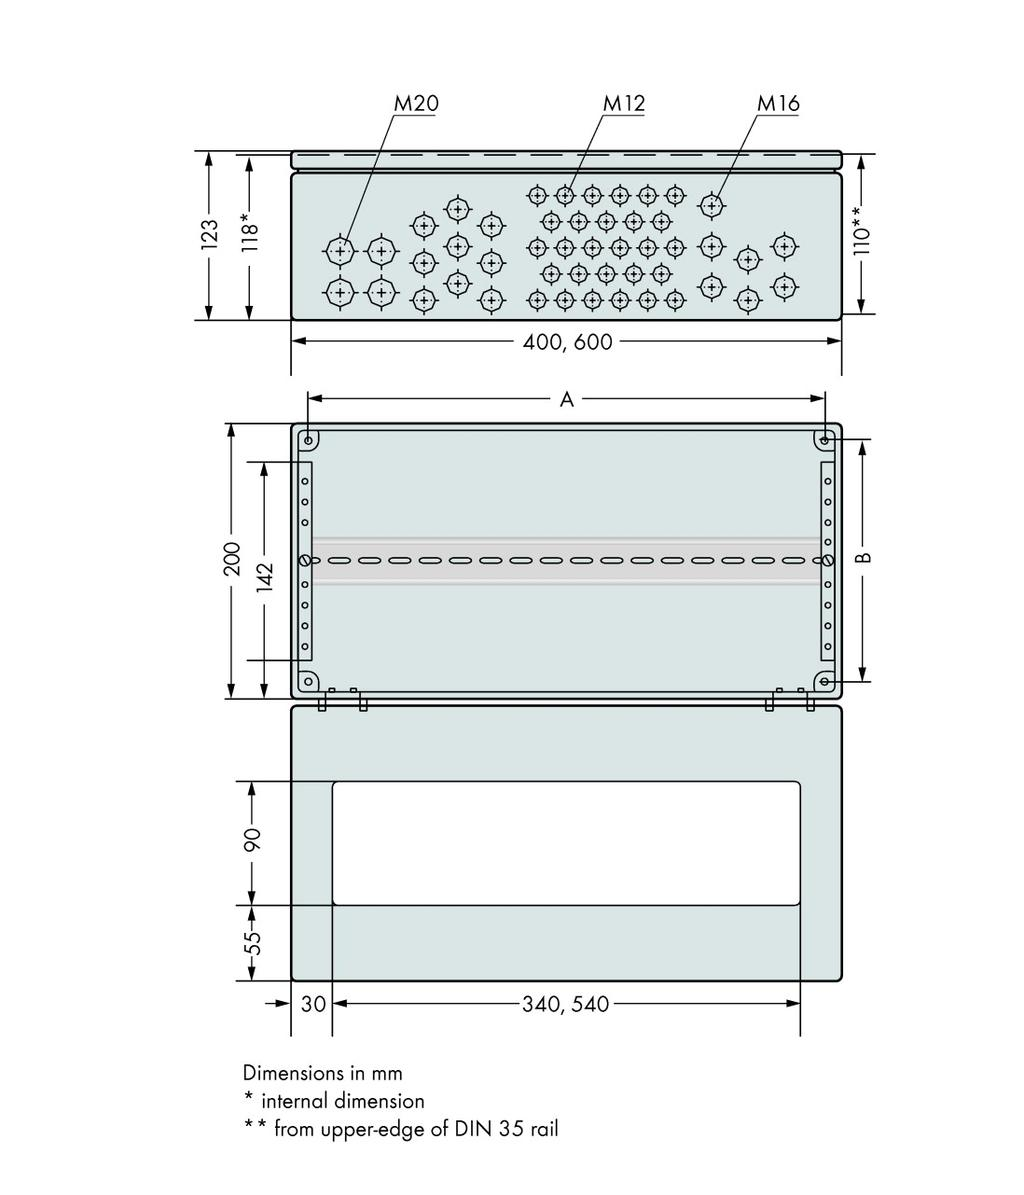 110 Block Enclosure Wiring Diagram Wago Ip65 850 804 Stainless Steel Wxhxd 400x123x200 Mm 4 X M20